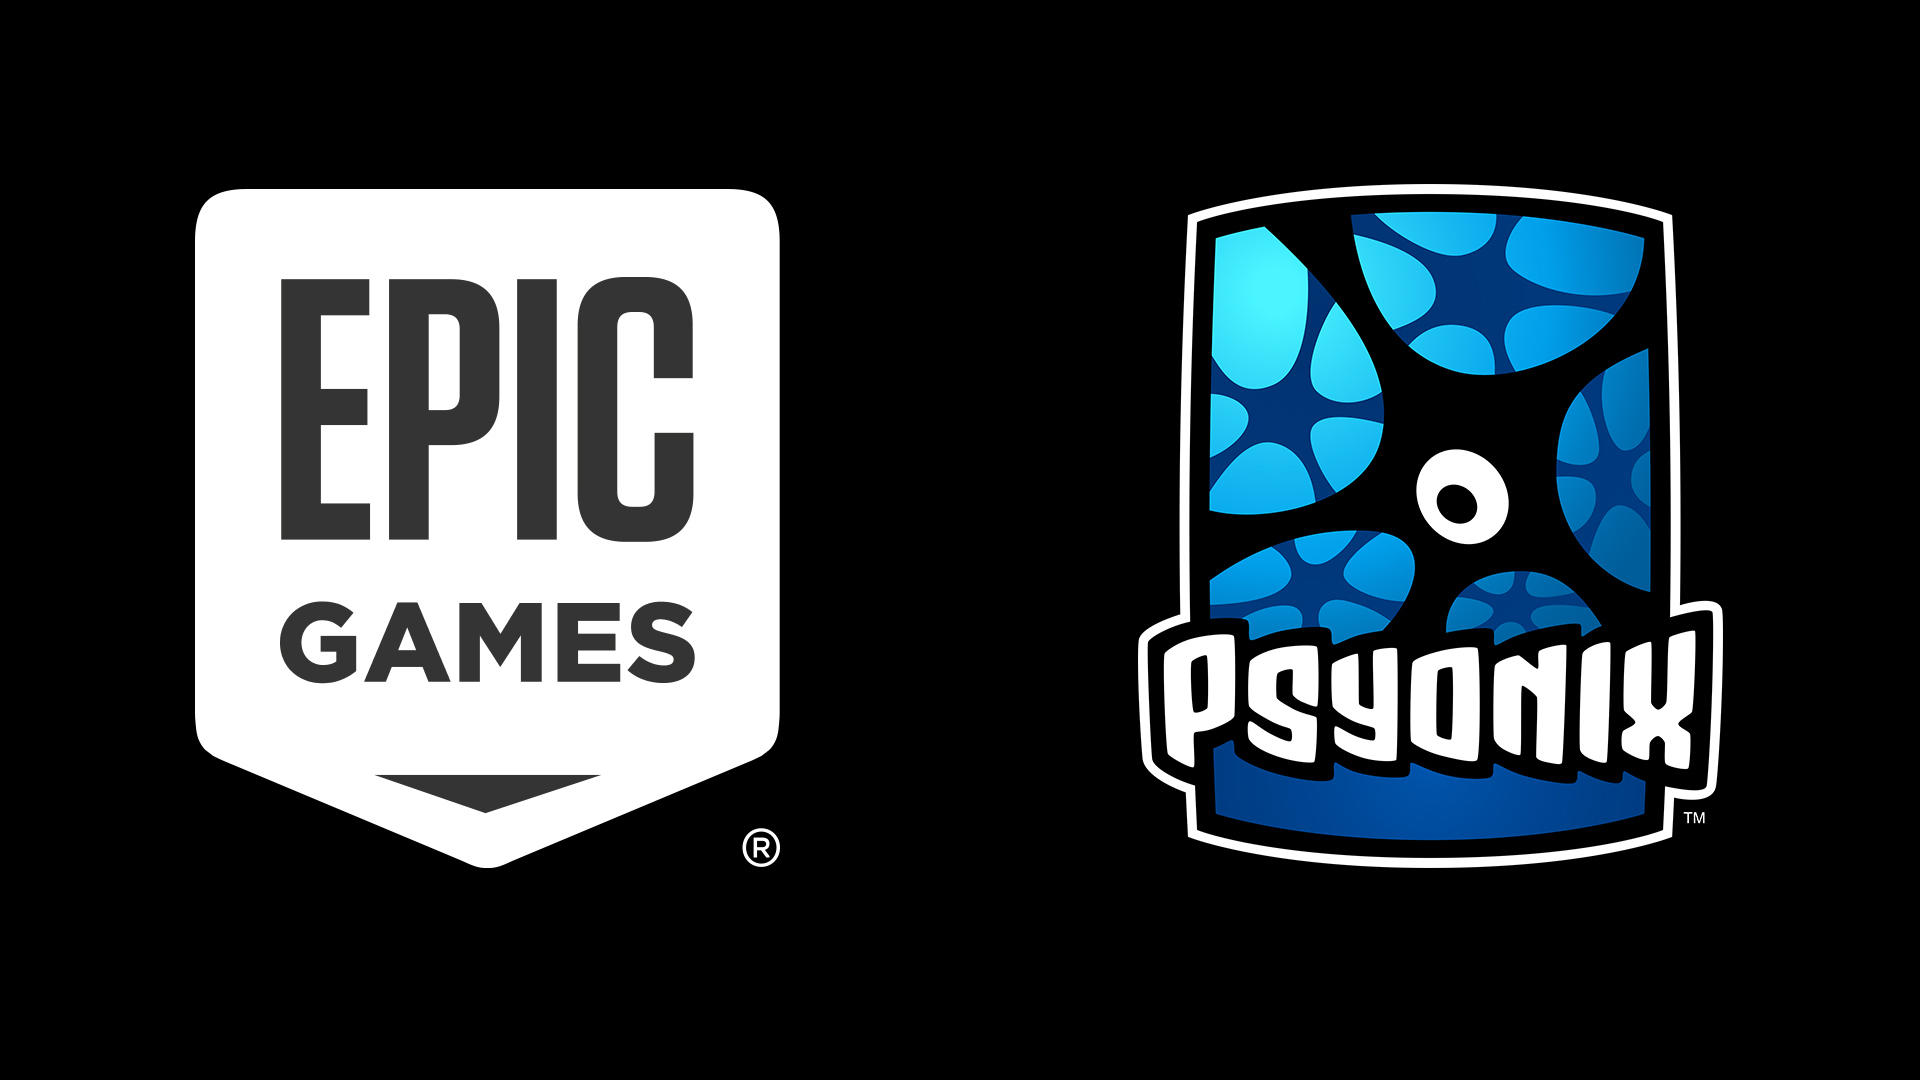 Epic Games to Acquire 'Rocket League' Developer Psyonix